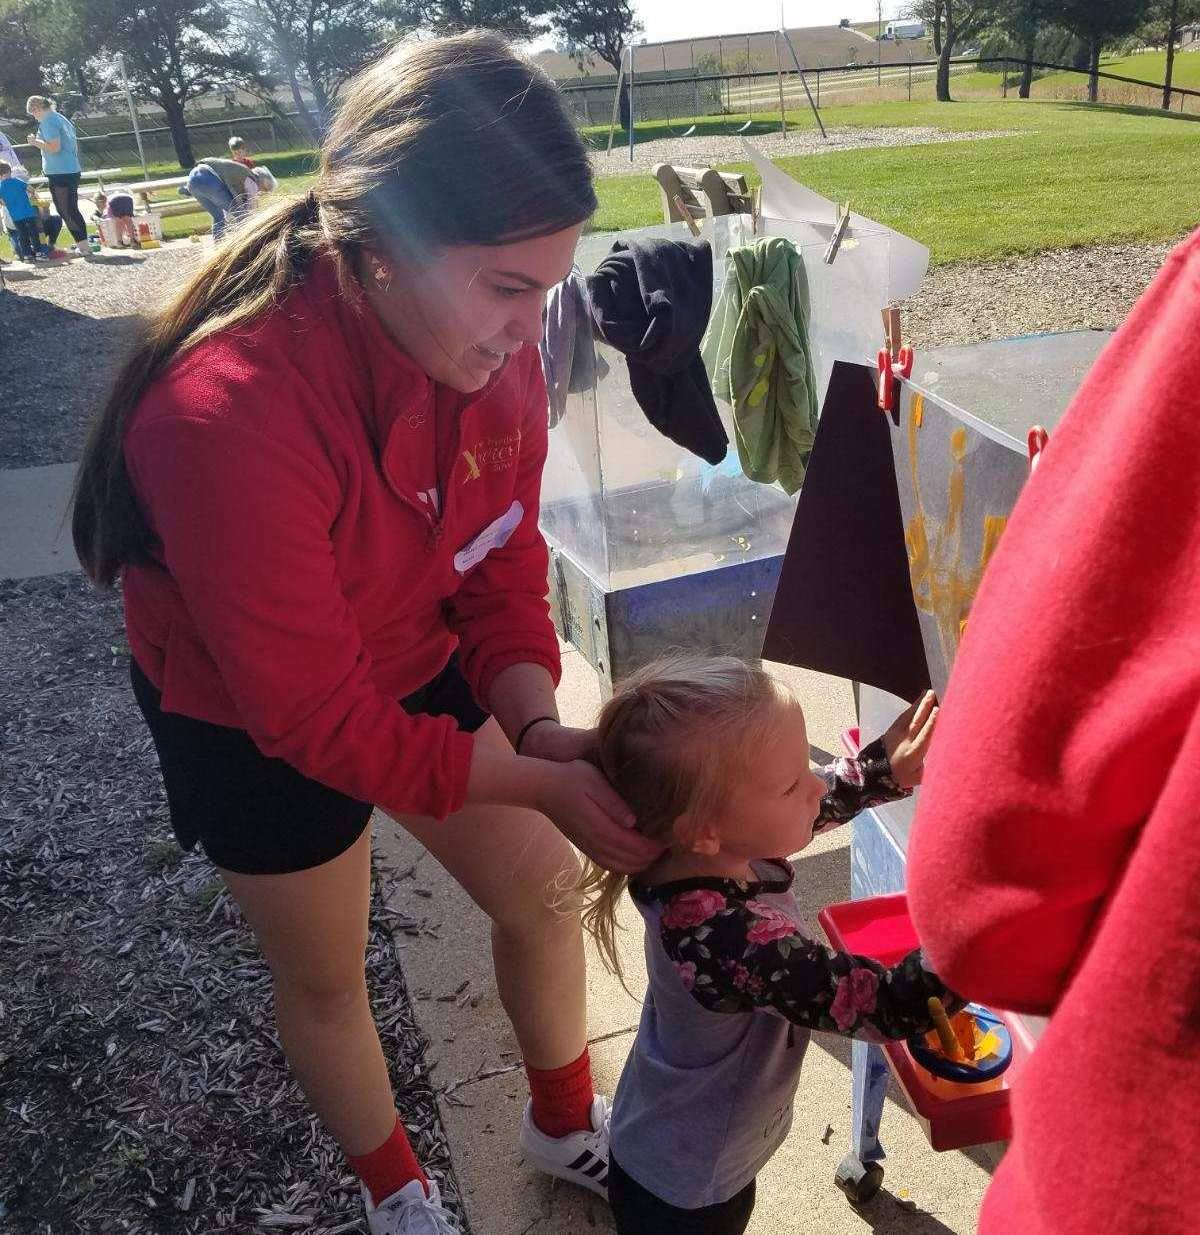 High school student helping younger child with art project